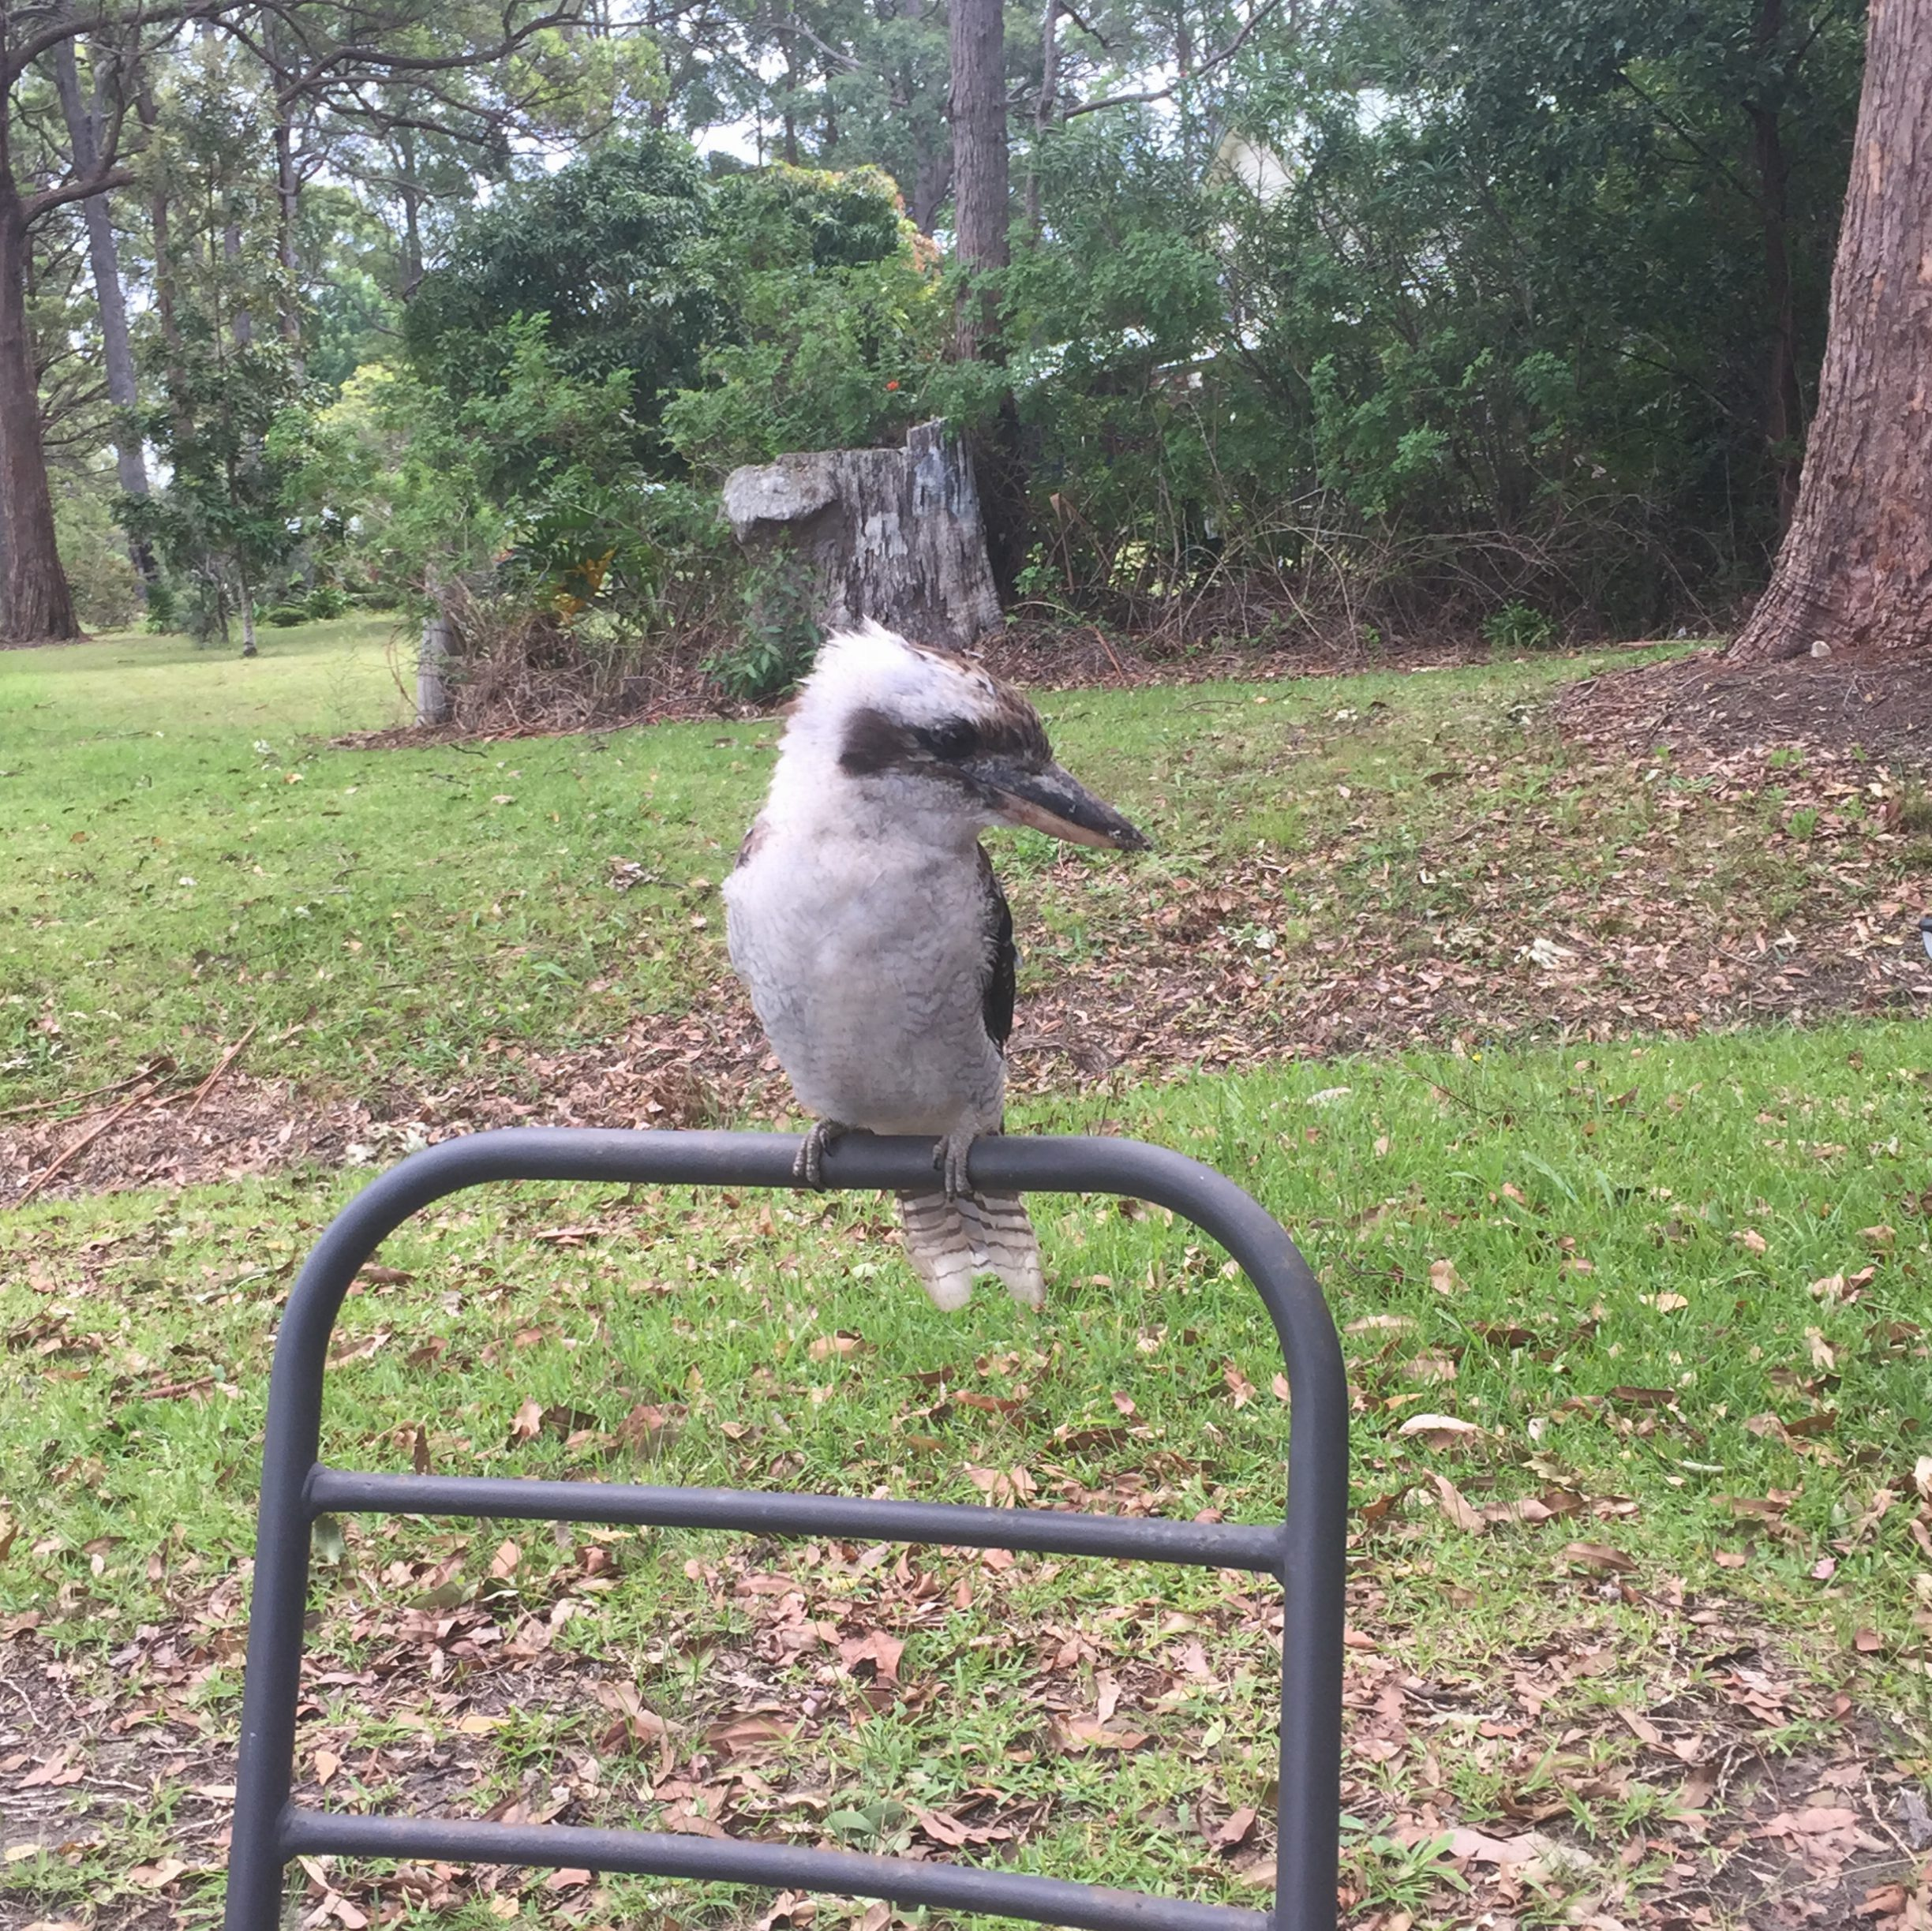 George, Our resident Kookaburra